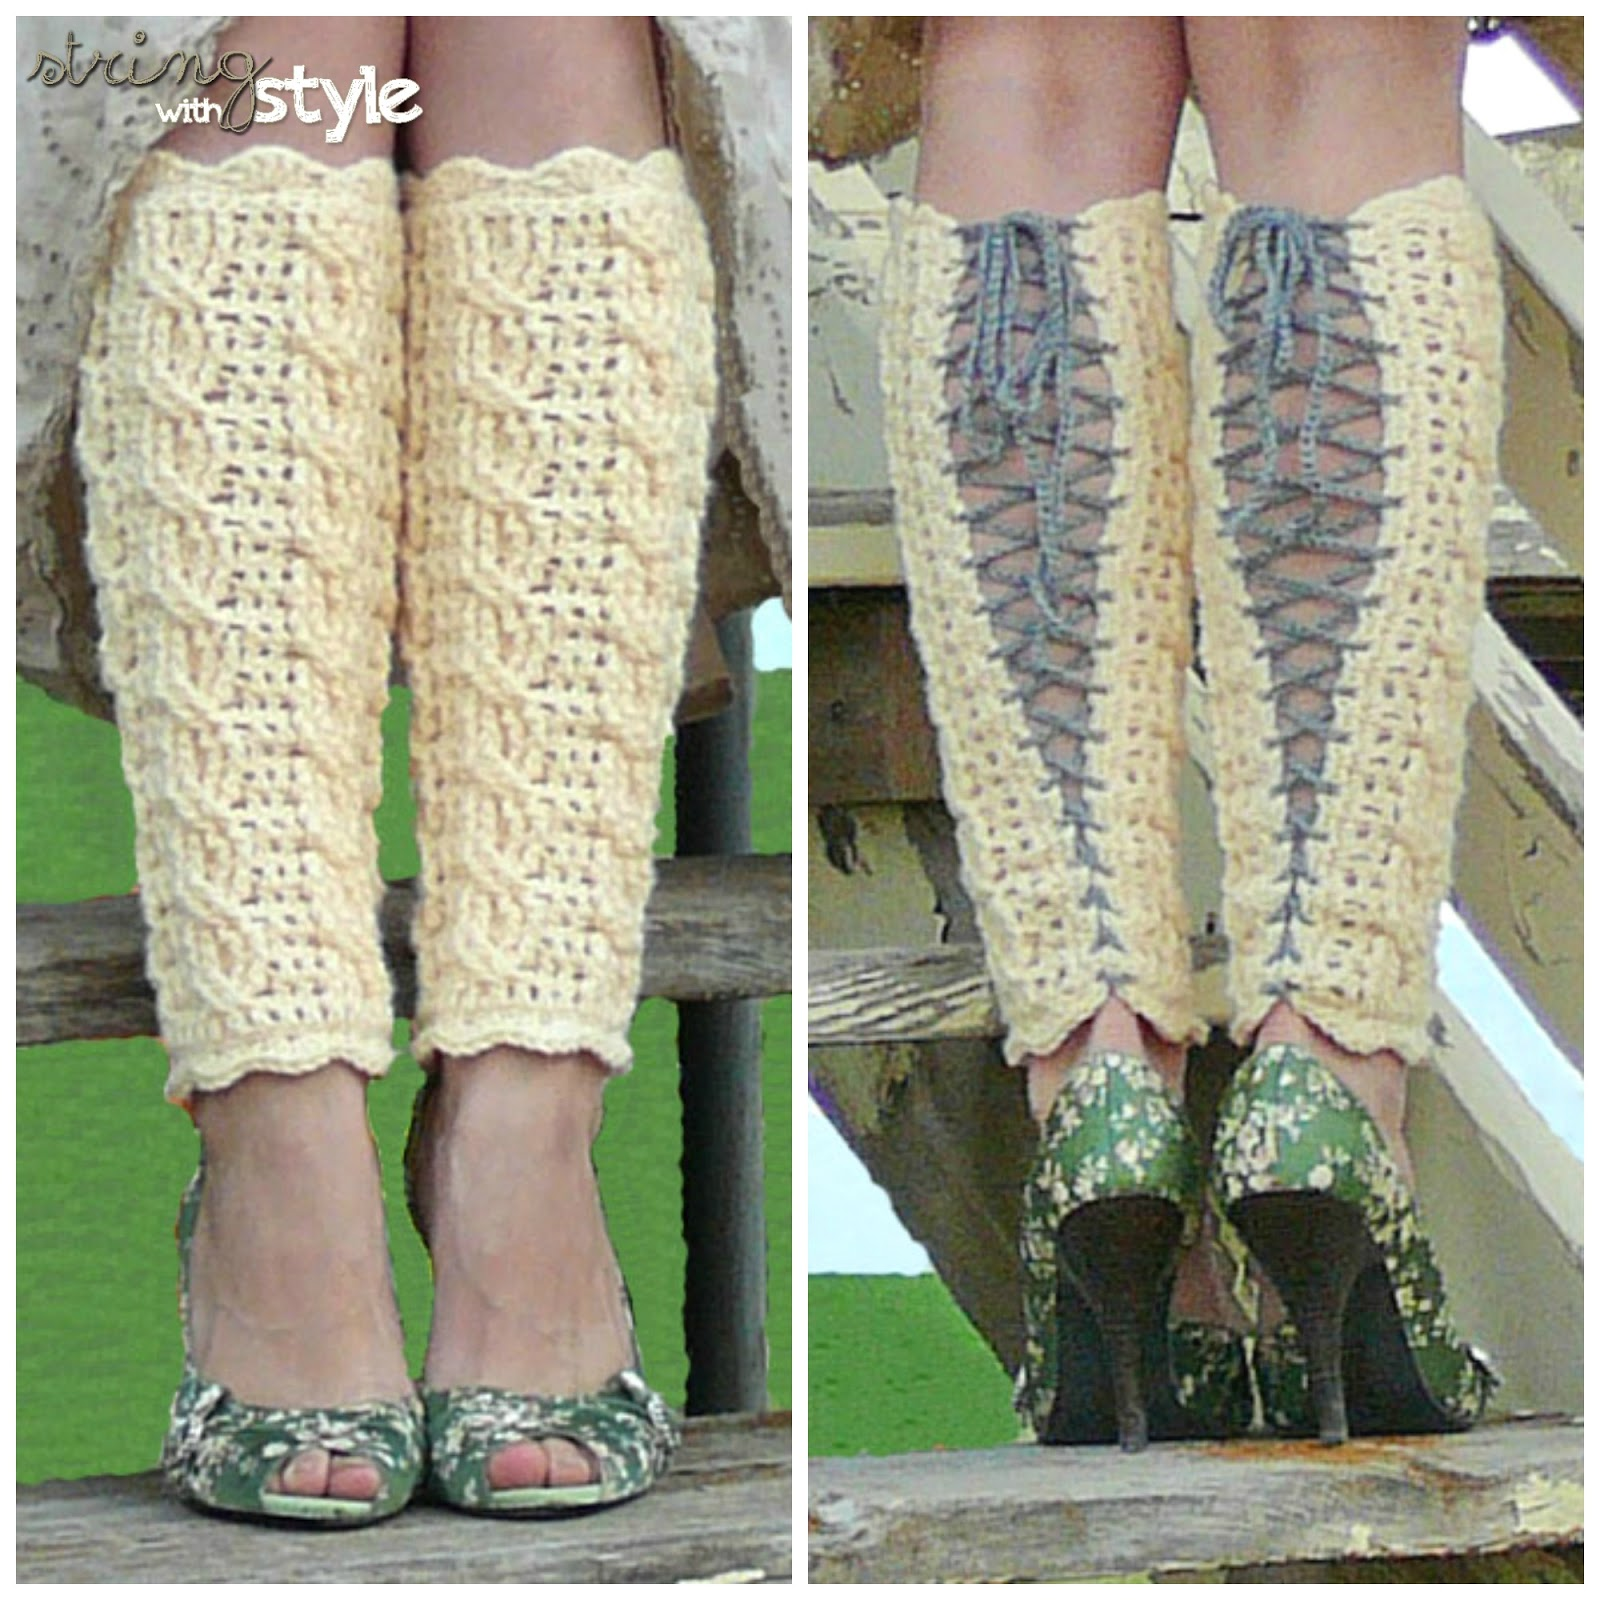 String With Style: Cables of Love Legwarmers